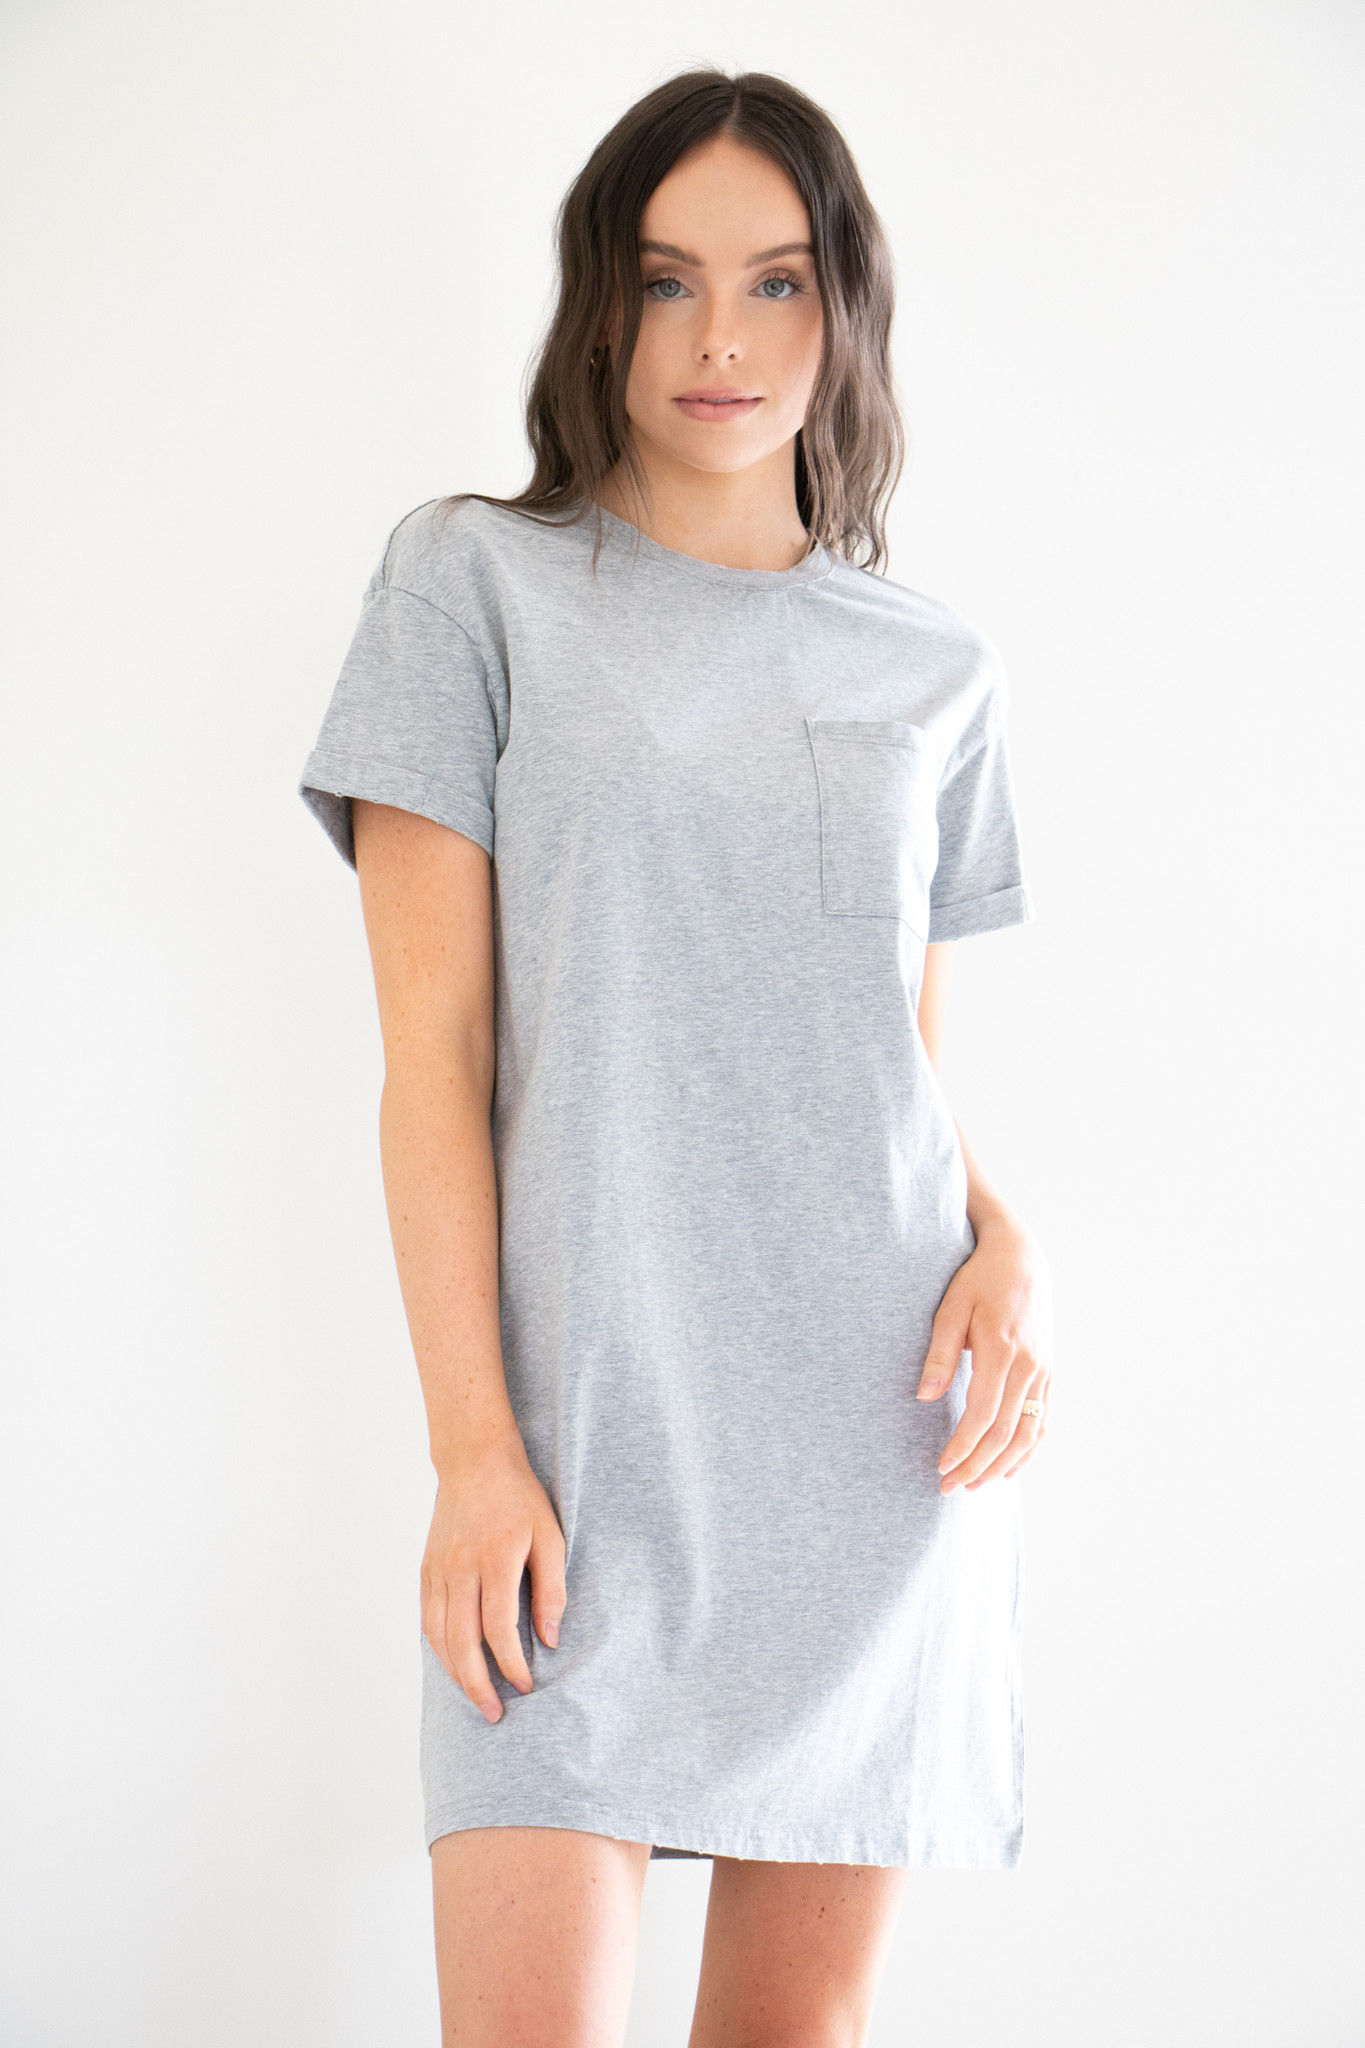 Milly Mineral Washed Tee Dress in Mineral Grey